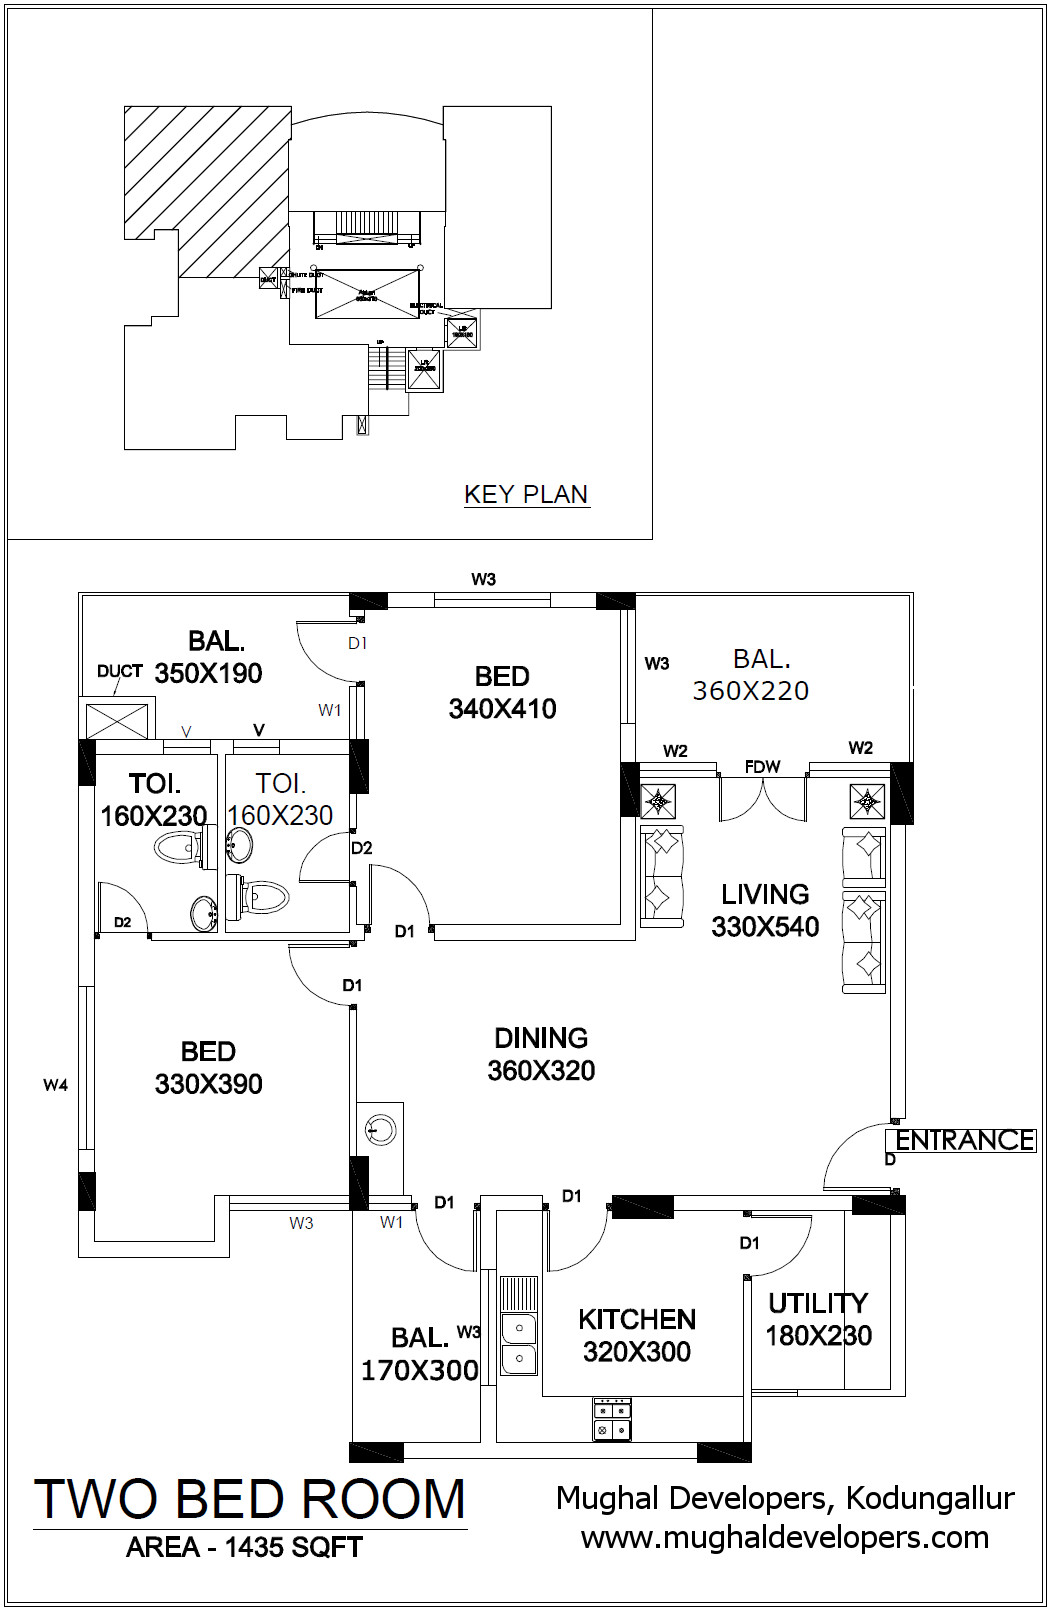 Apartment plan 2 Bedroom Hall Kitchen (2BHK) - Mughal Apartments, Kodungallur